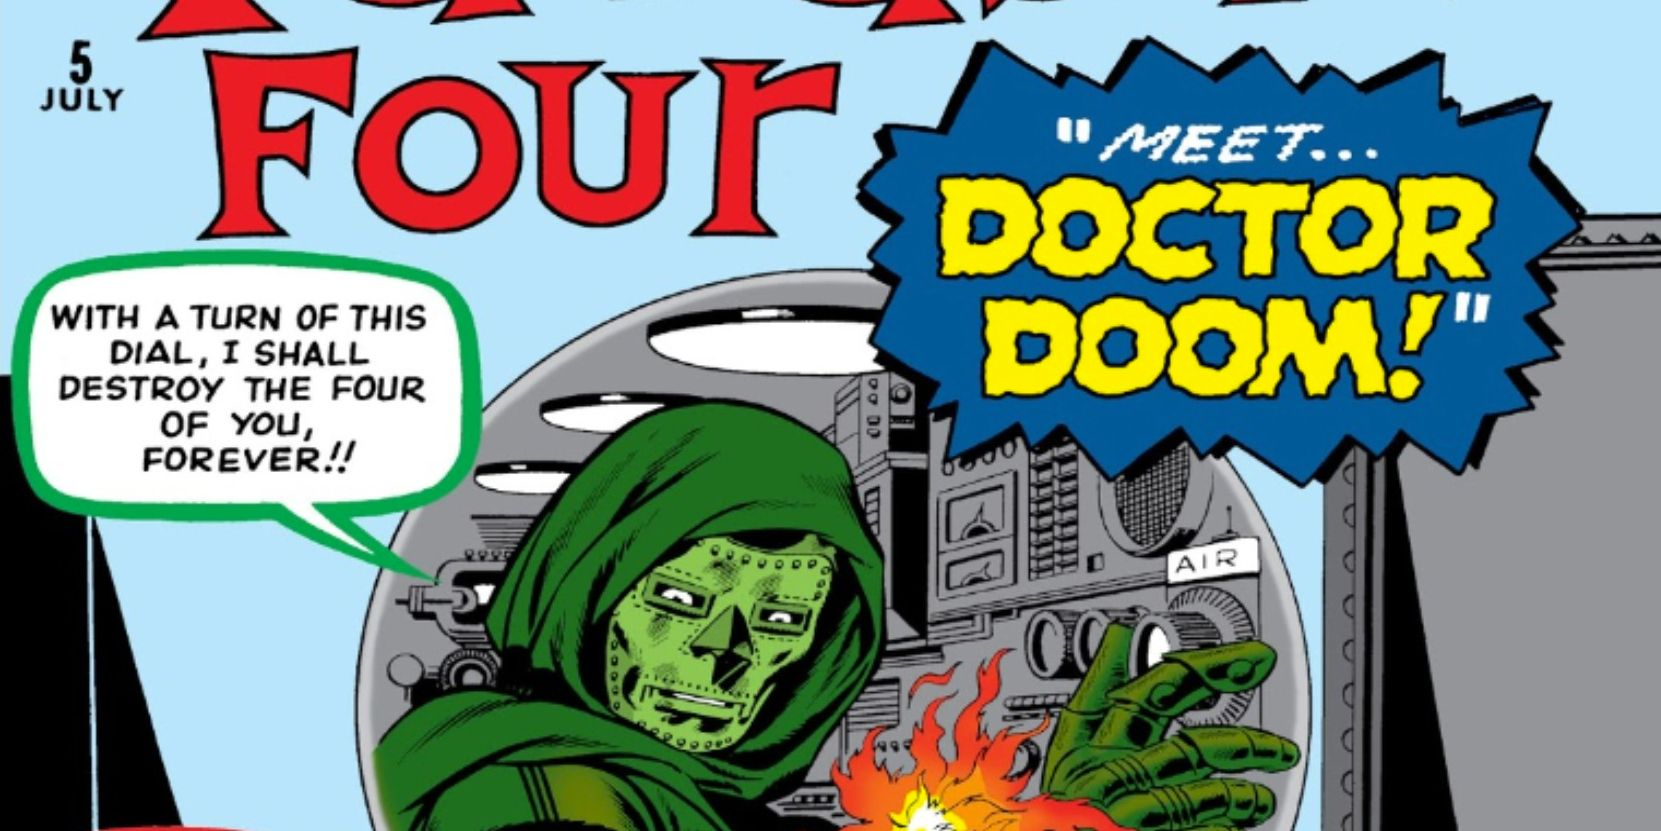 Fantastic Four: Doctor Doom's Debut Made The Thing Into Blackbeard